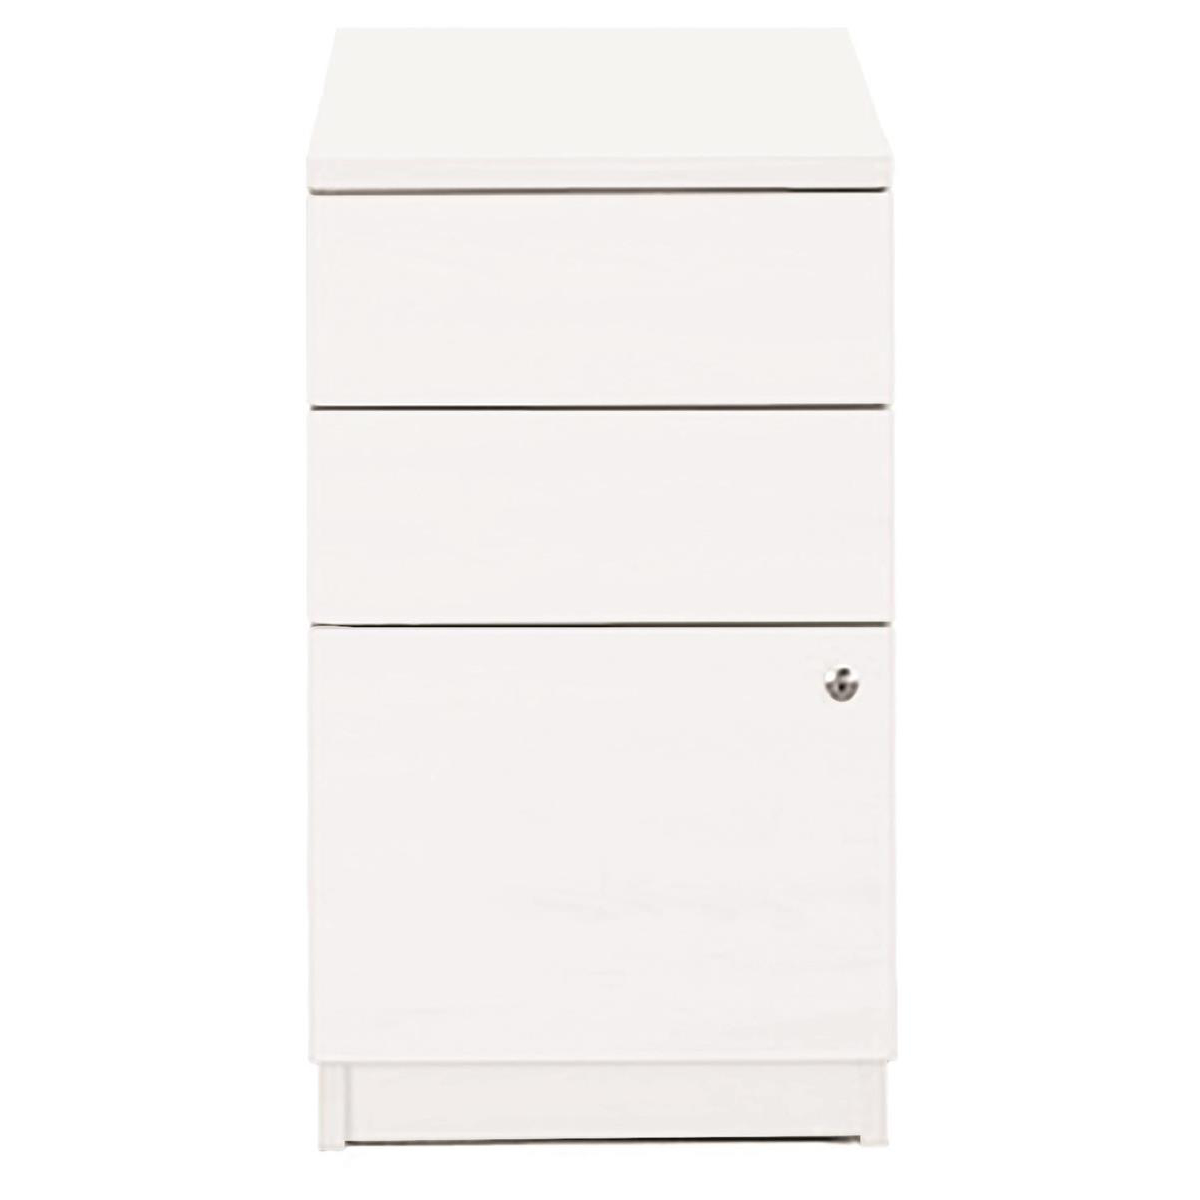 Pedestals Sonix Desk High 3 Drawer 800D Pedestal 430x800x730mm Polar White Ref w9699wh